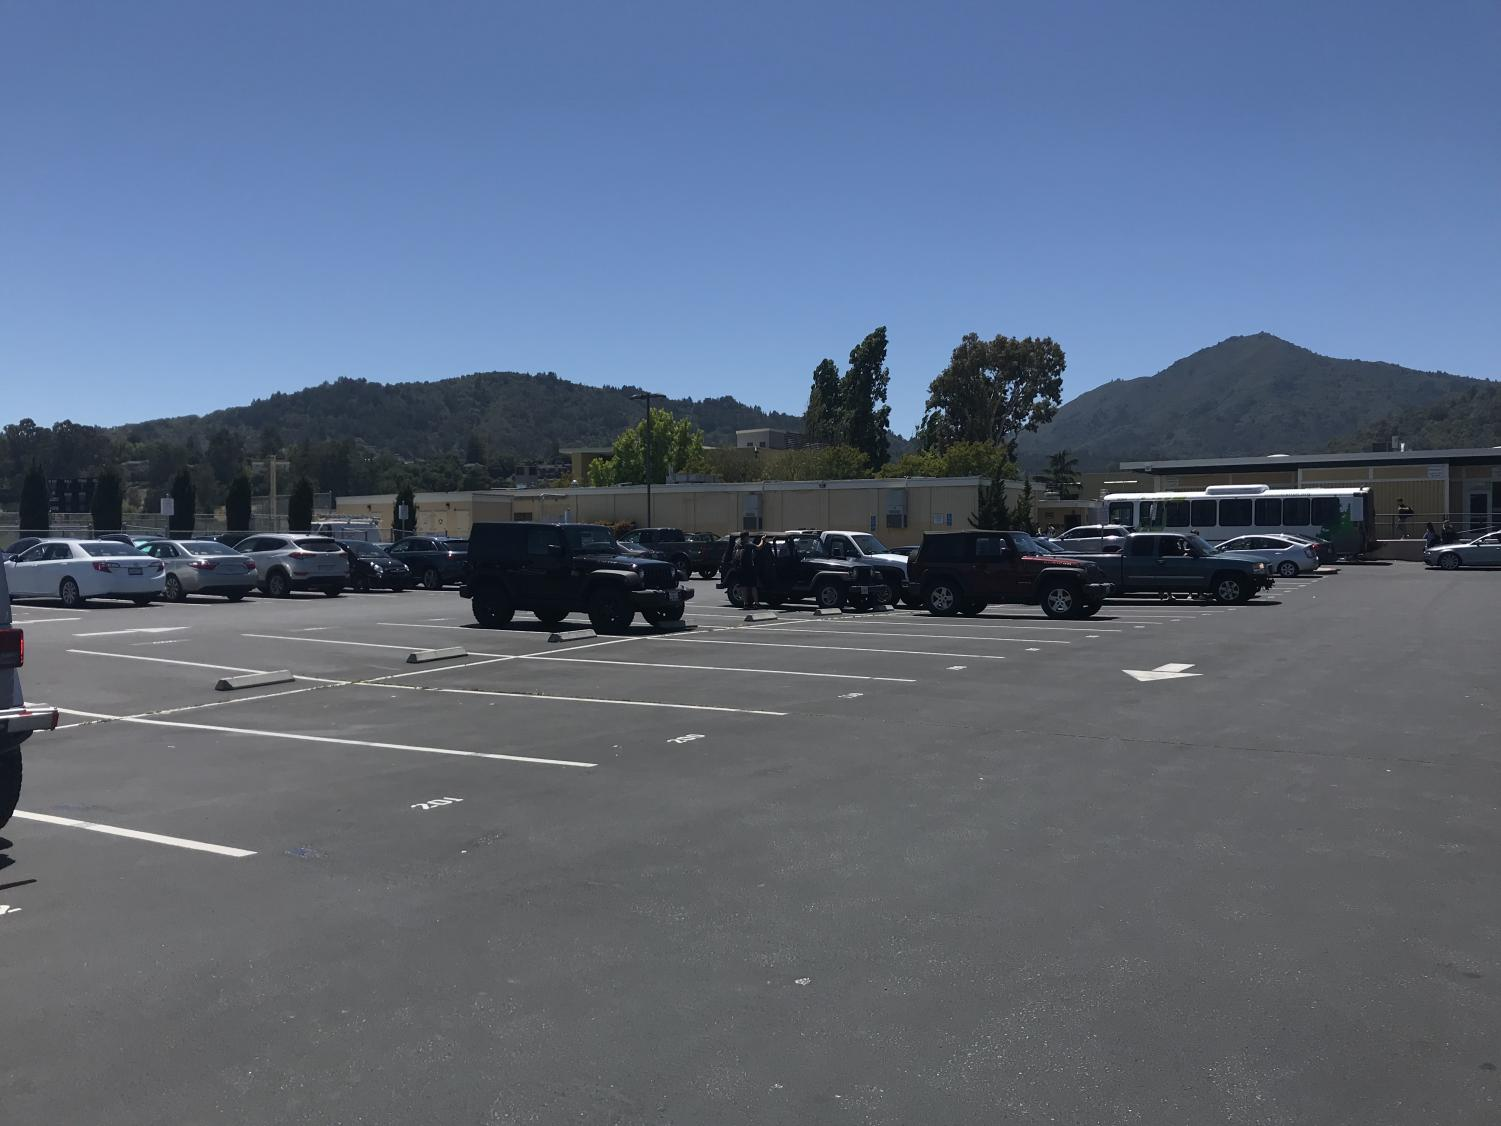 On Tuesday, May 28, the back parking lot was strikingly empty, a feat that can only be attributed to the fact that it was the annual Senior Ditch Day. Instead of attending their regularly scheduled classes, seniors extended their three-day weekend and enjoyed the sunny weather at Stinson, San Francisco, and pretty much any place that wasn't Redwood.